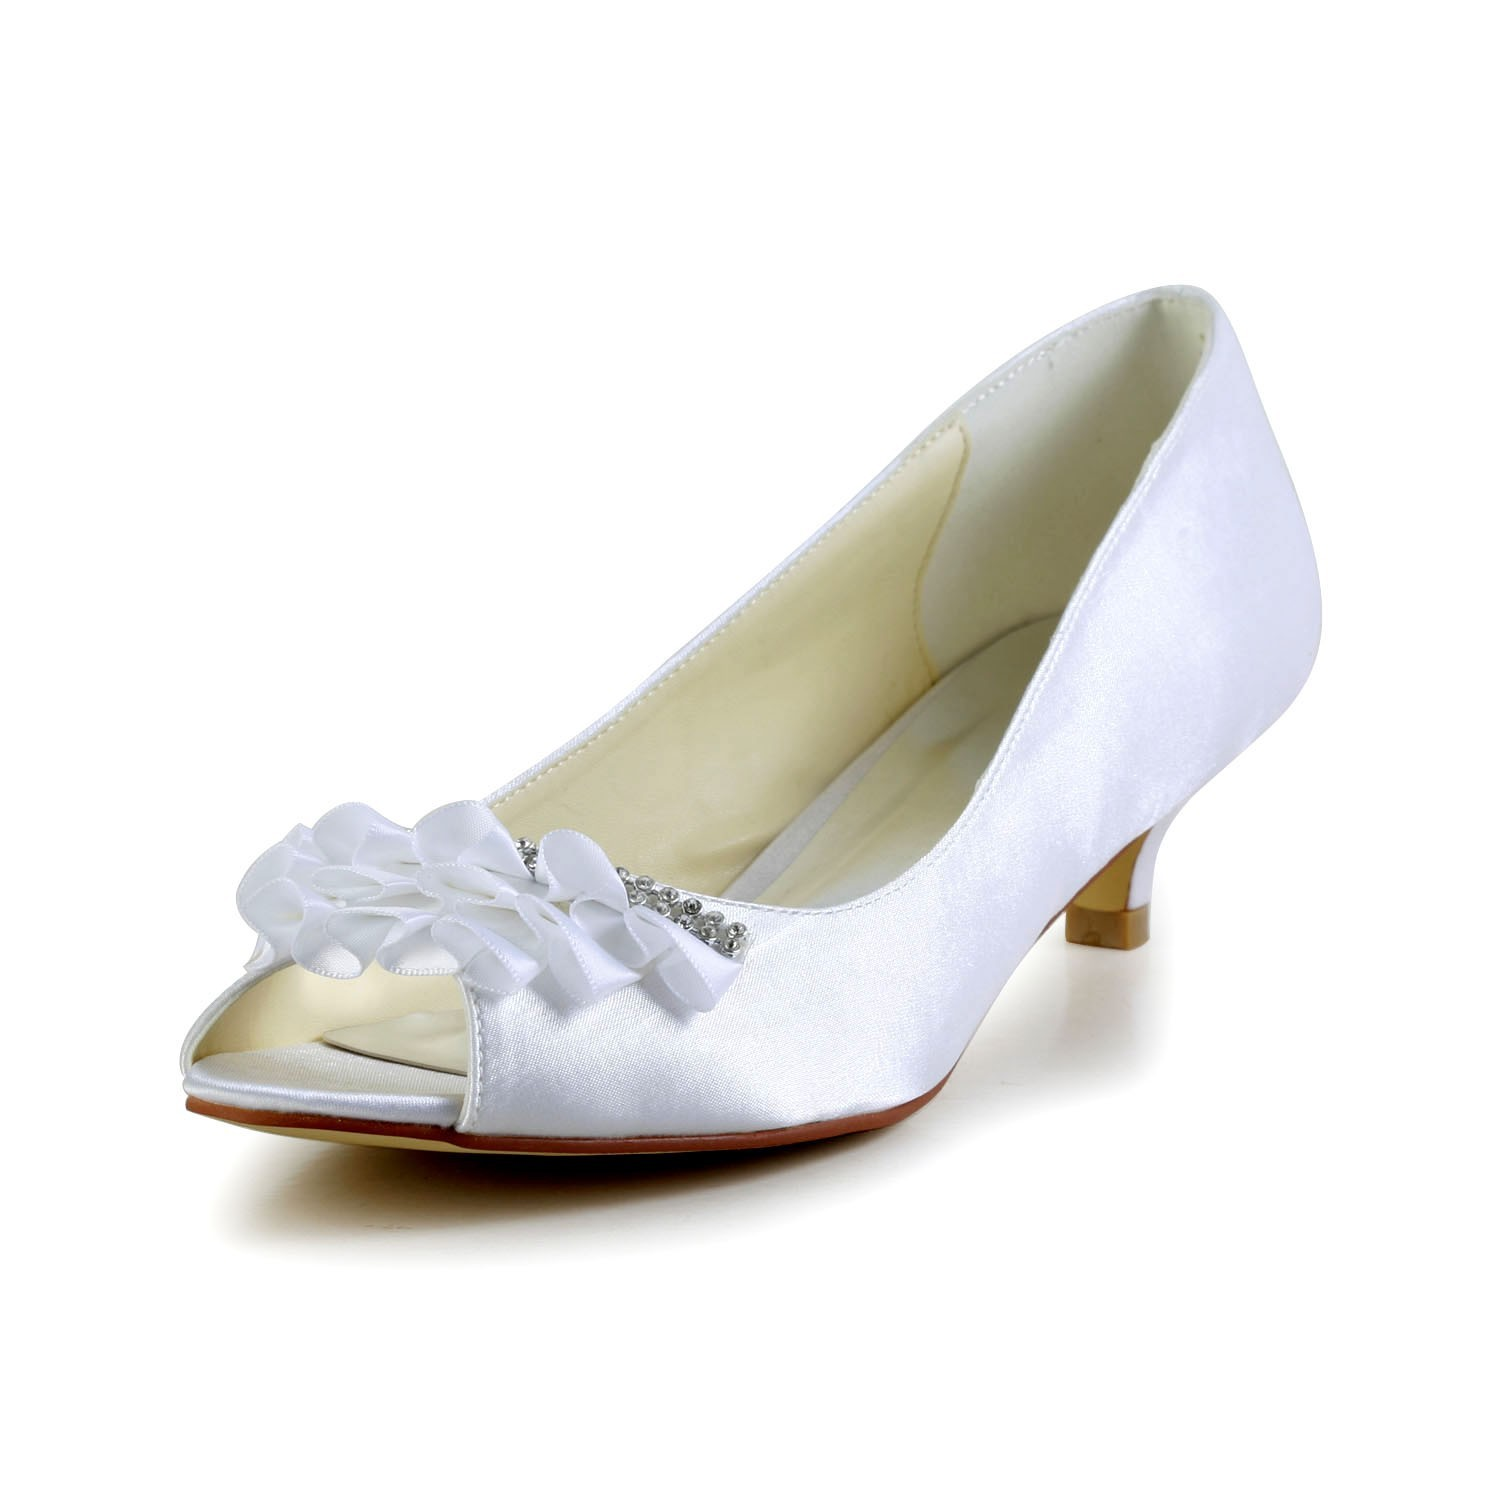 low heel wedding shoes with rhinestones women s satin kitten heel peep toe sandals wedding shoes 5618